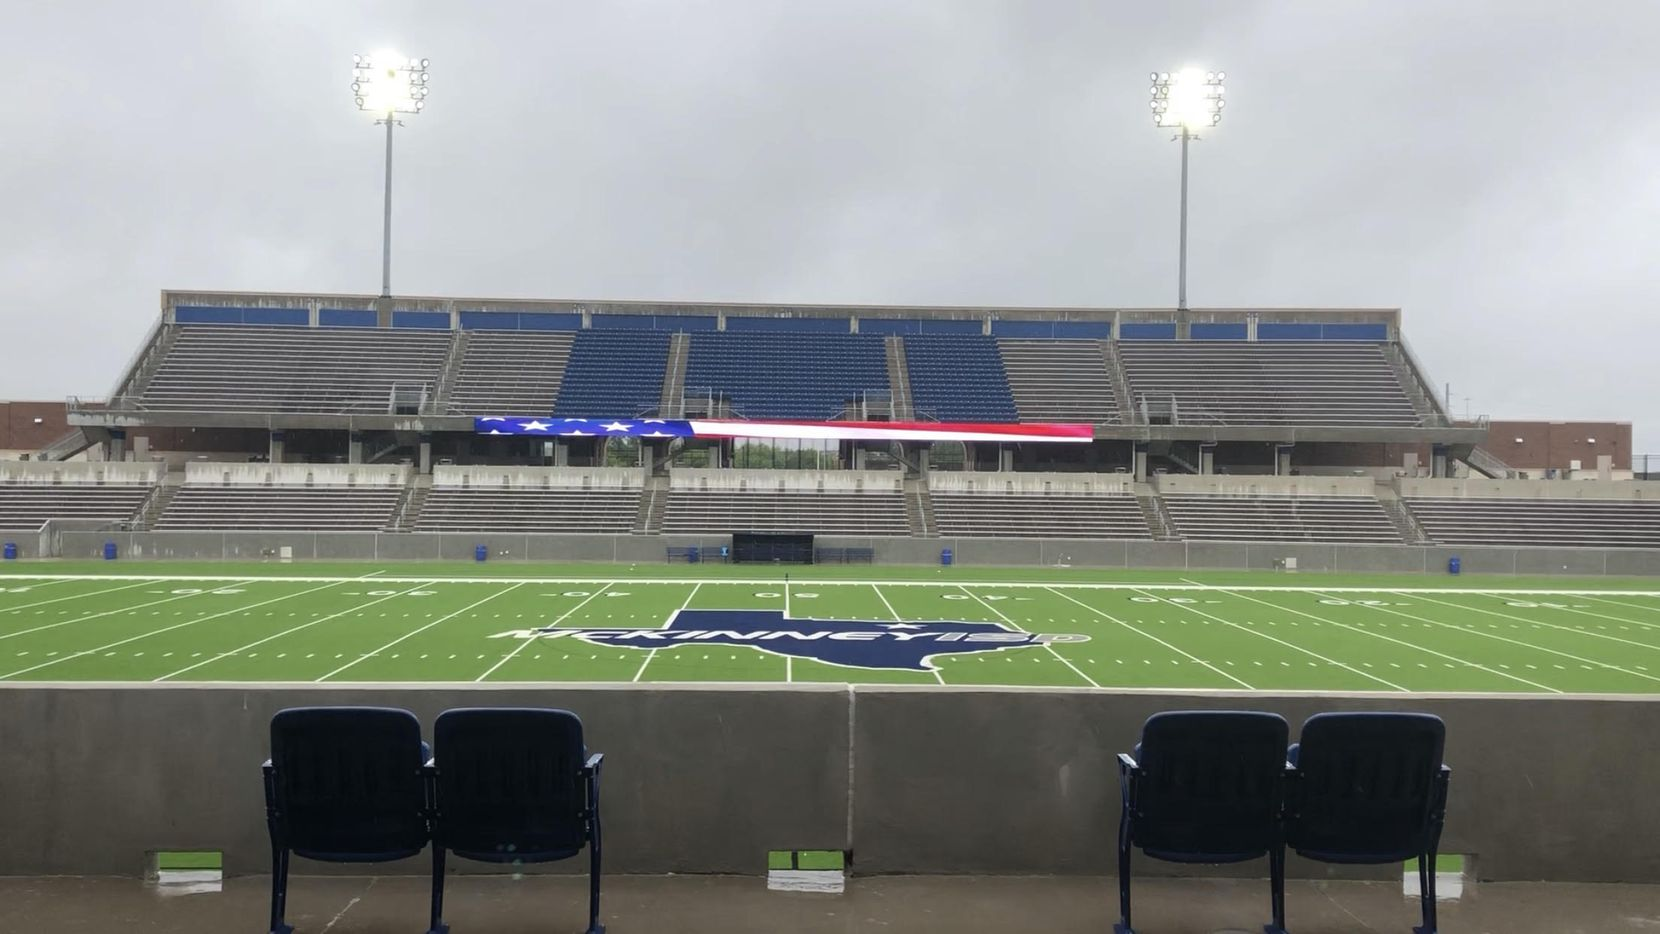 Stormy weather caused delays for the regional final soccer games at McKinney ISD Stadium on April 13, 2019. (Joseph Hoyt)